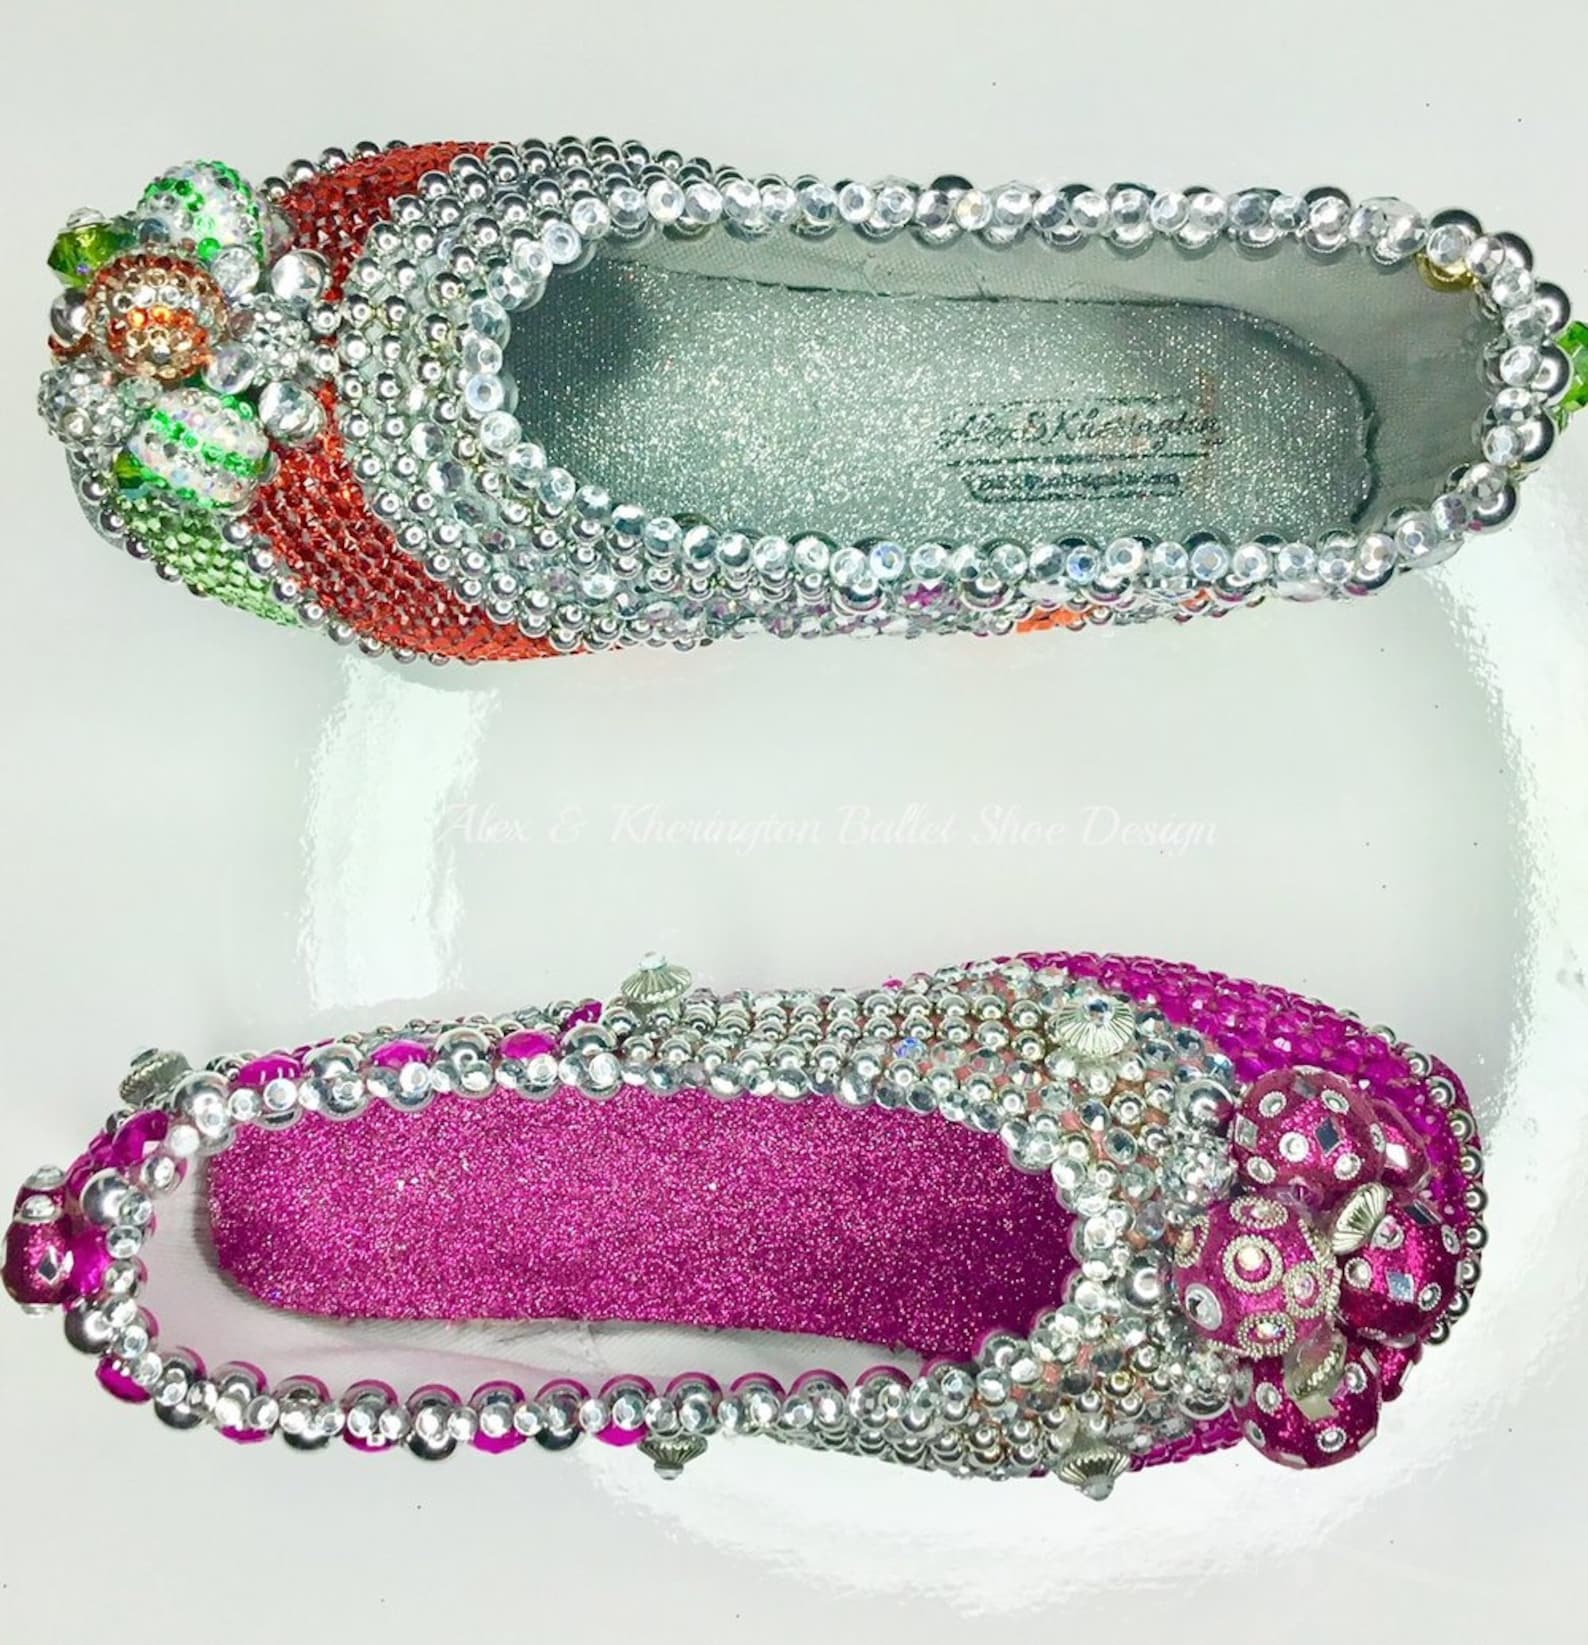 grand jeté - alex & kherington ballet shoe design, pointe shoe design, decorated pointe shoes